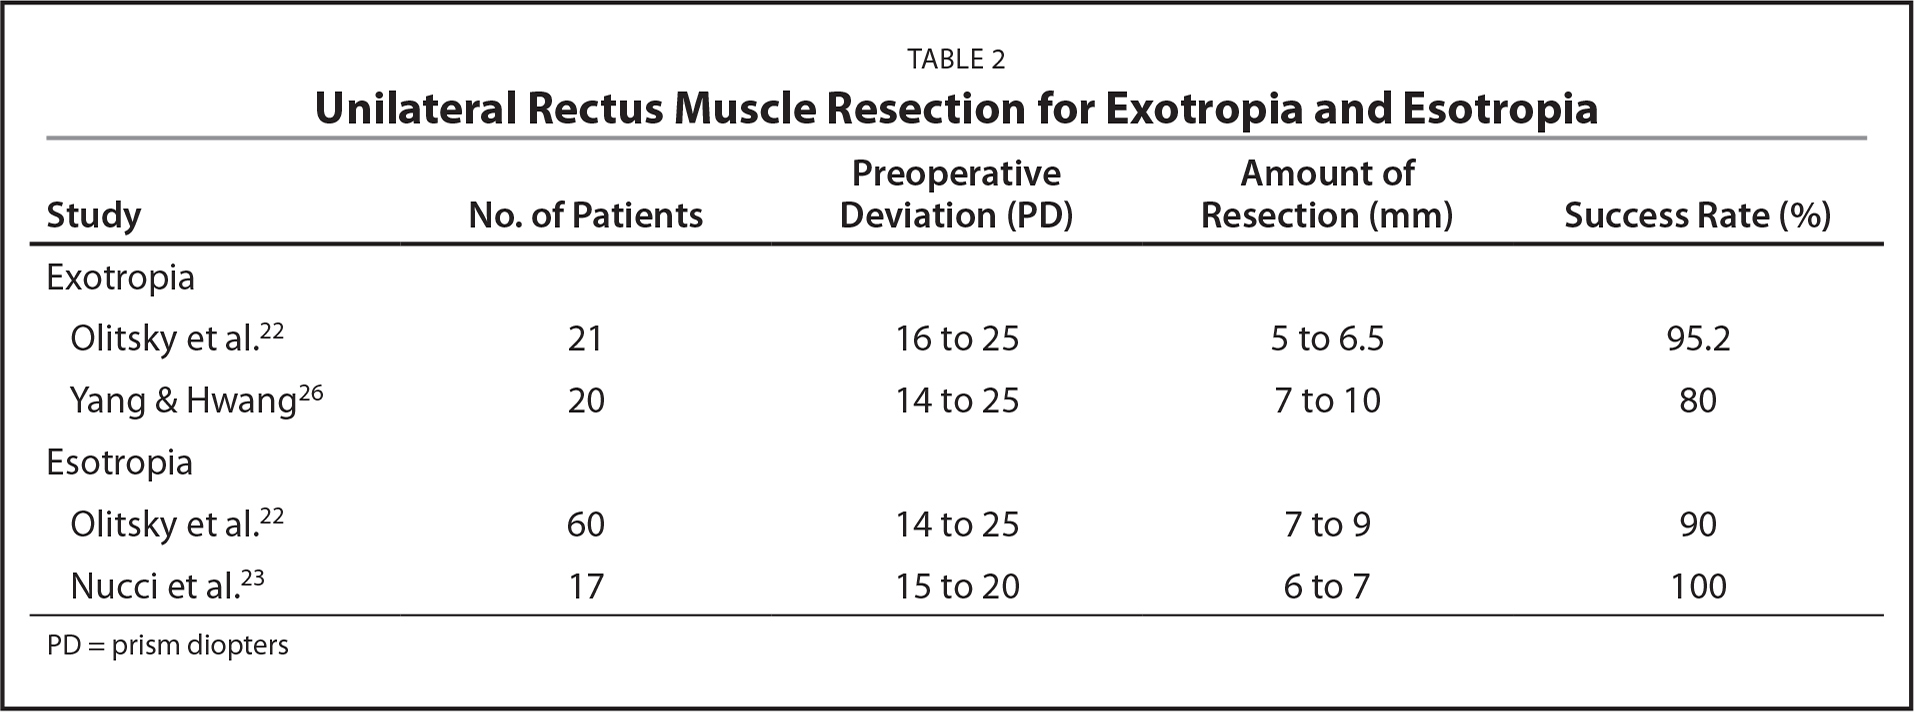 Unilateral Rectus Muscle Resection for Exotropia and Esotropia